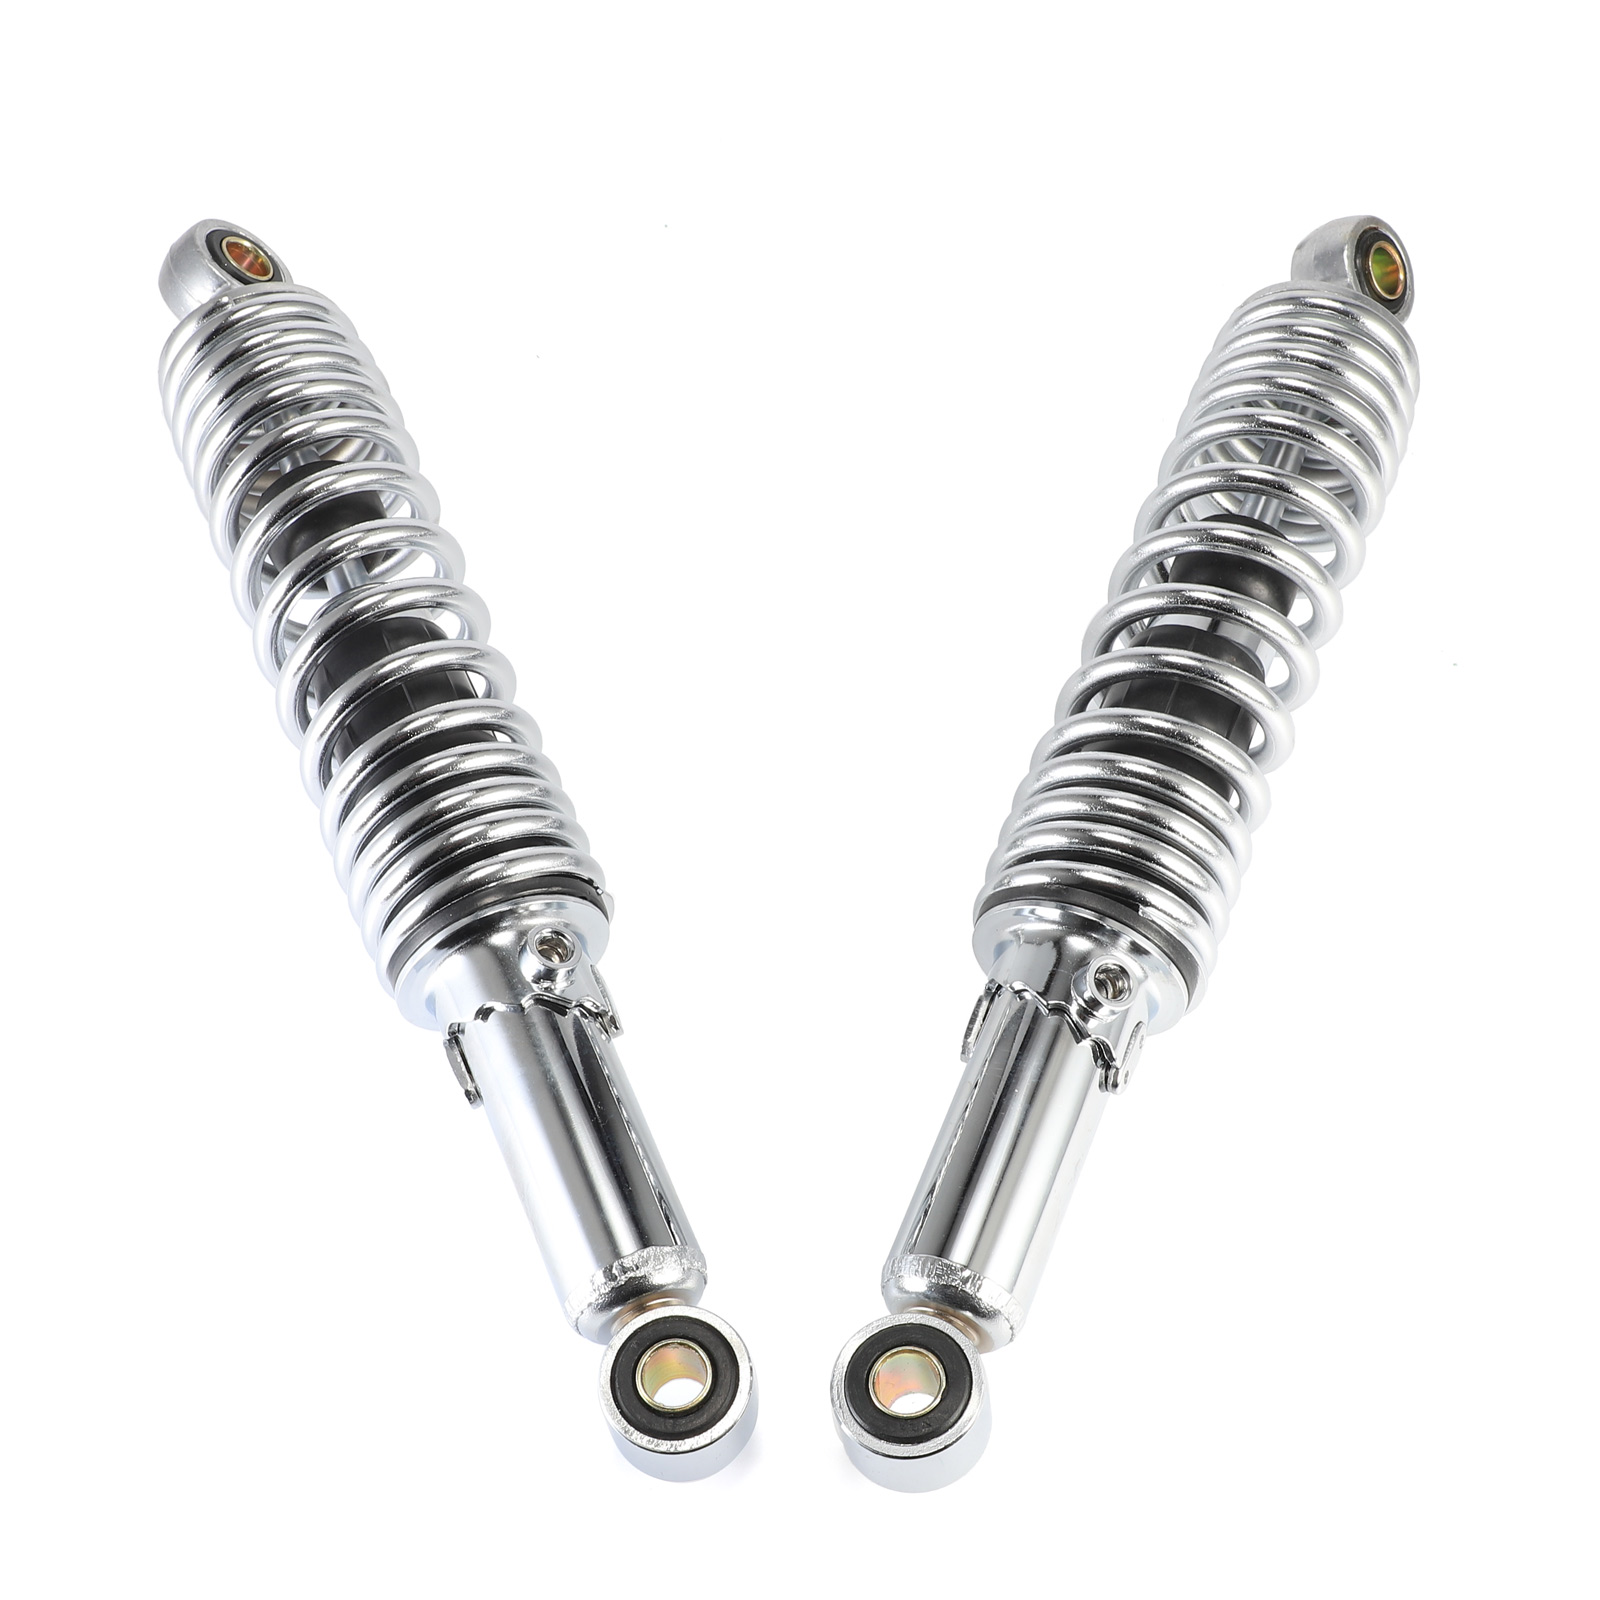 12 5 320mm Dirt Bike Rear Shock Absorbers For 90cc 110cc